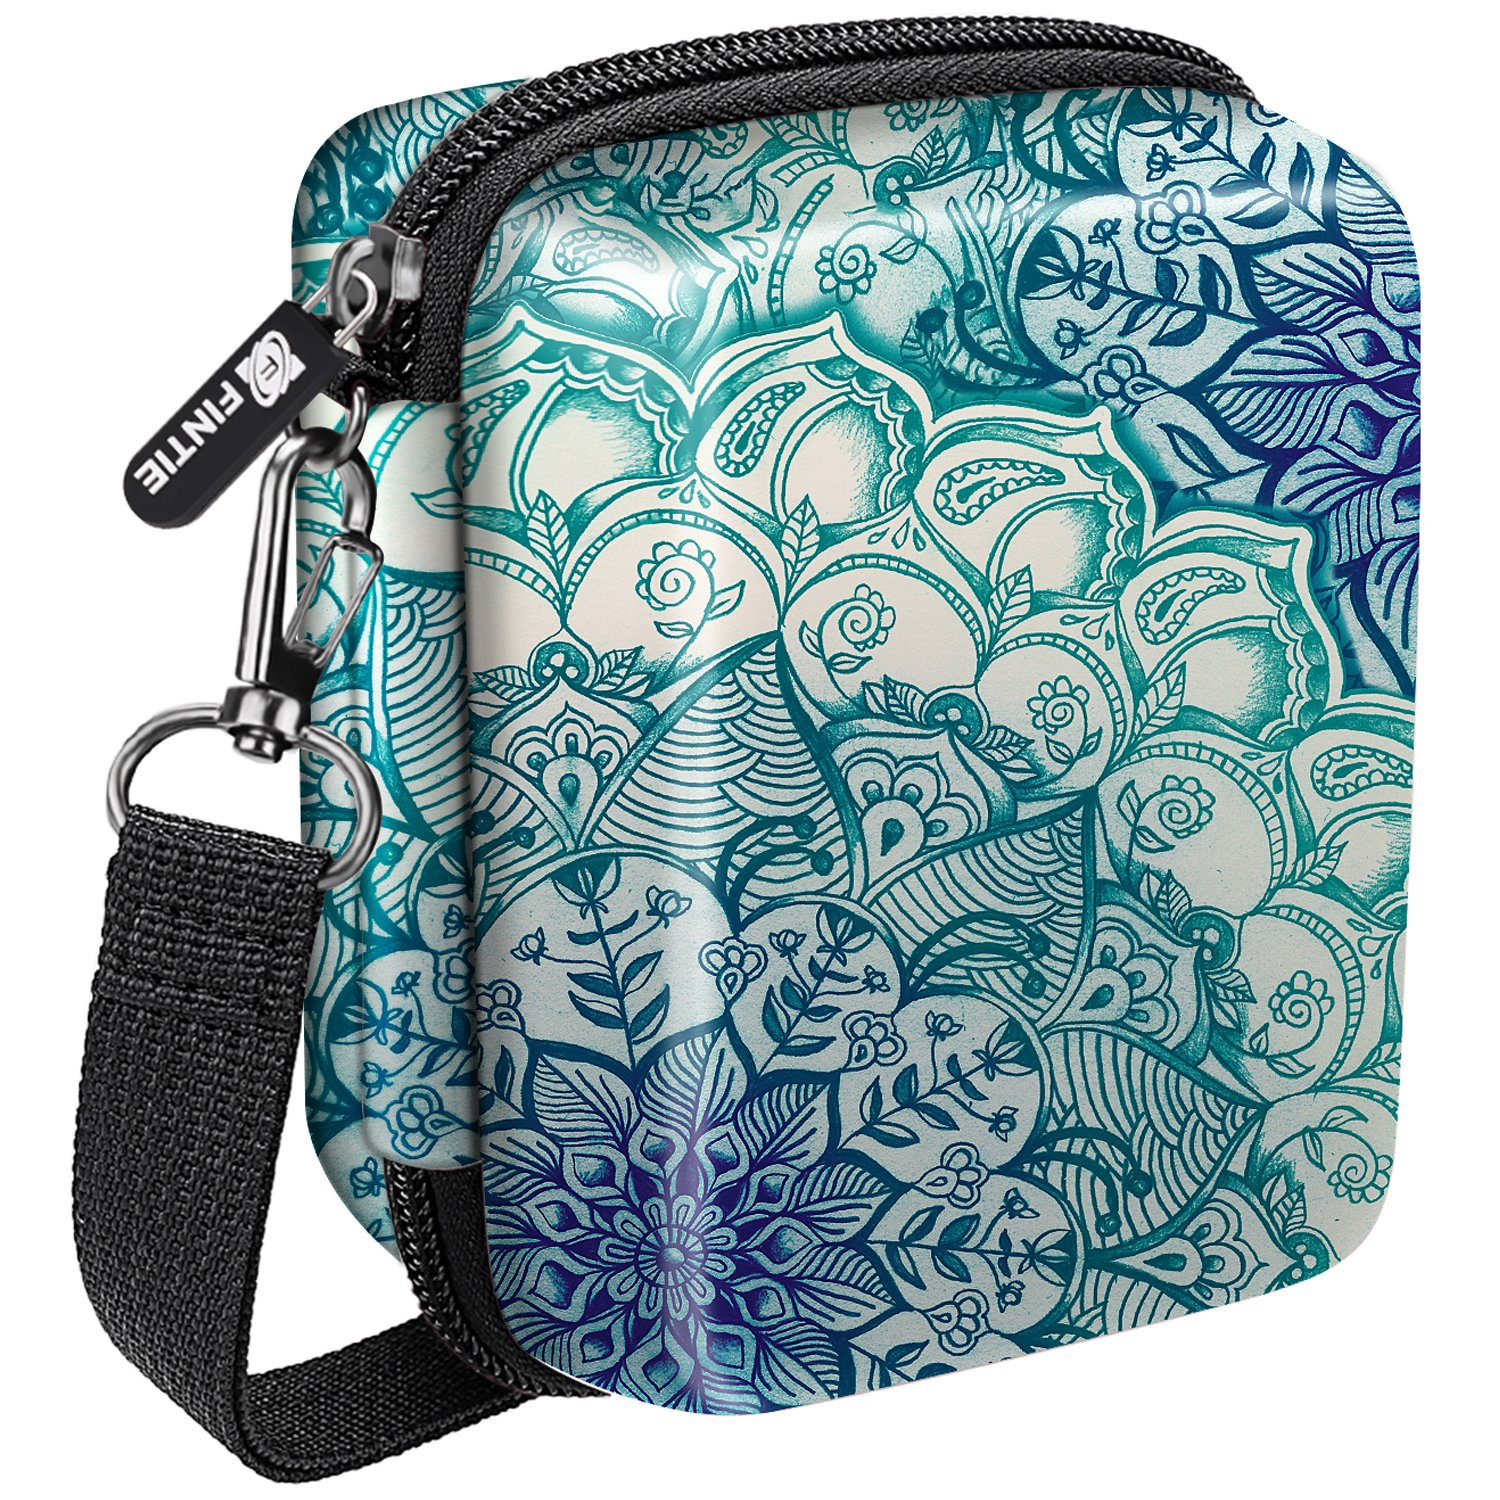 Fintie Carrying Case for pryntポケット, ACBB004US B07C5N6LCN Z-Emerald Illusions